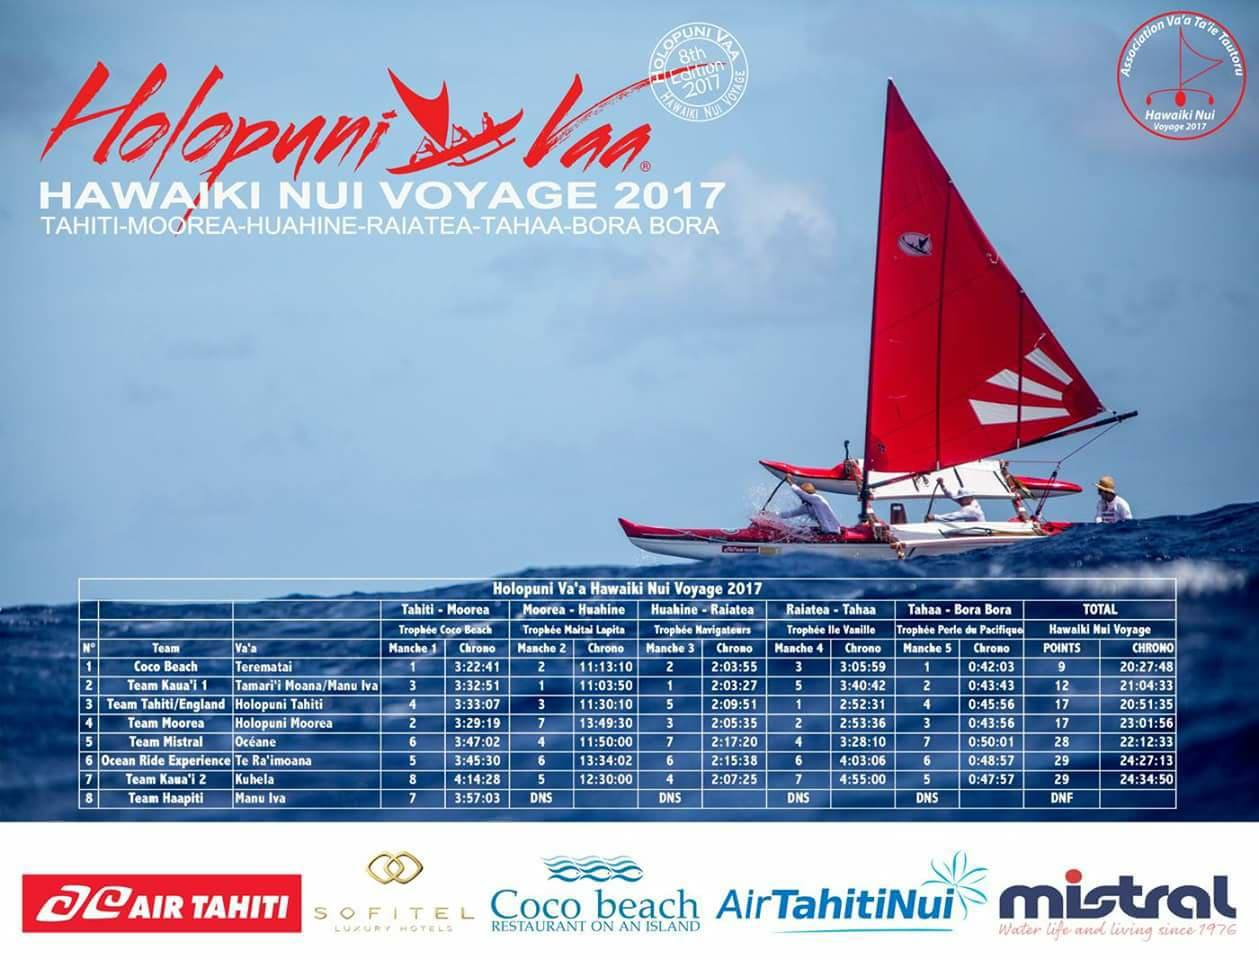 Le classement final Hawaiki Nui Voyage 2017